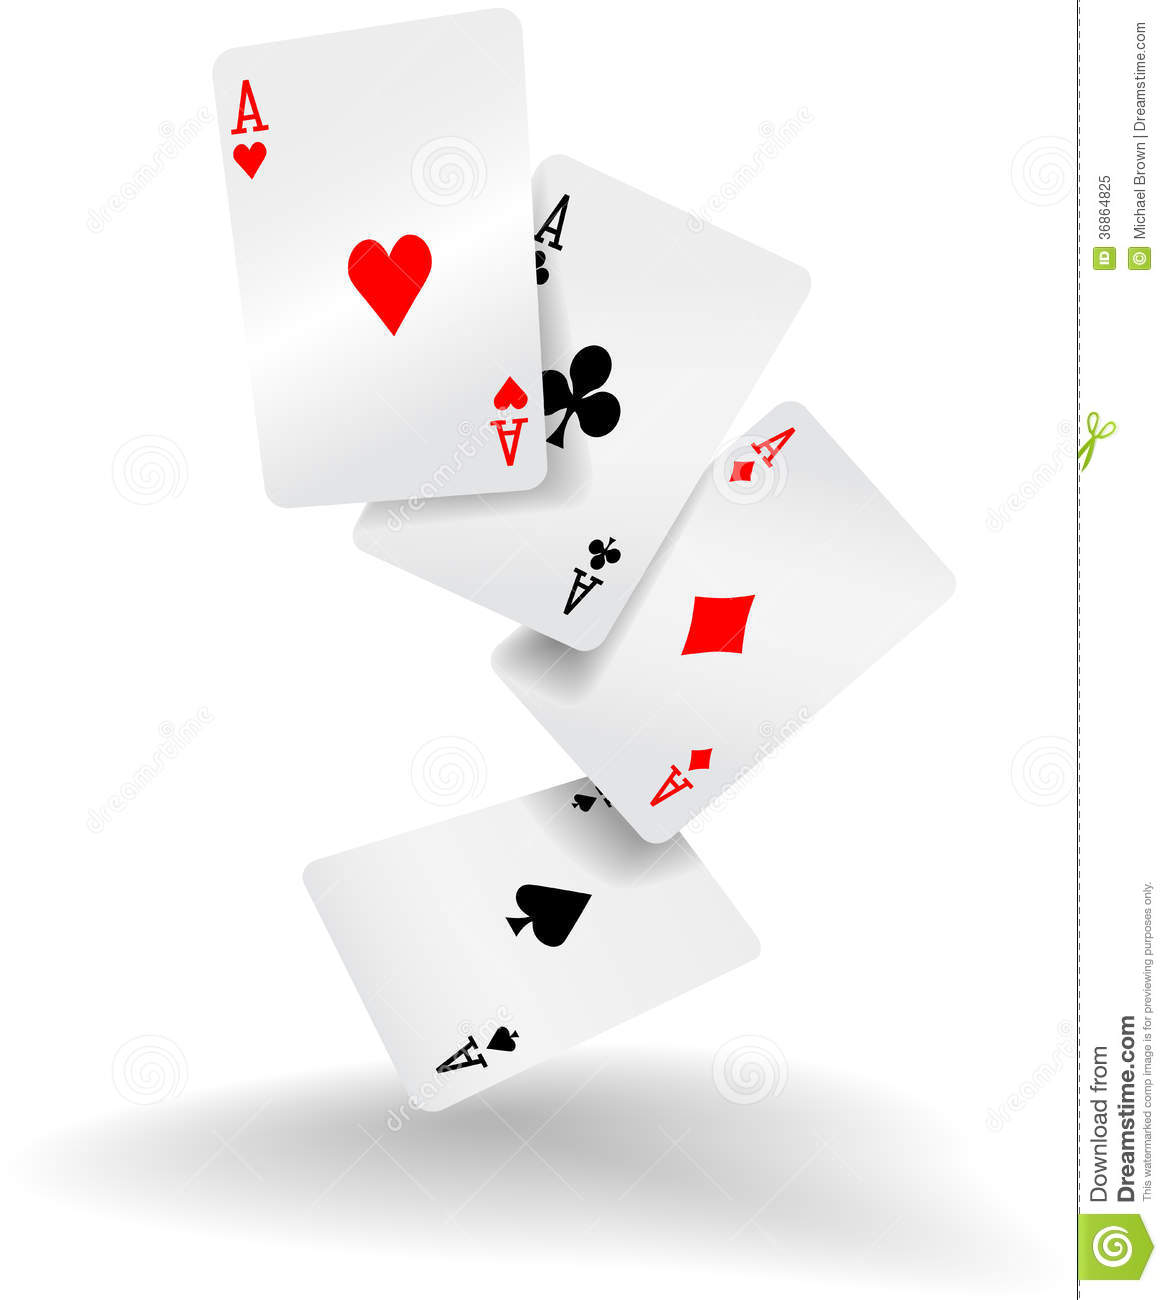 Playing Cards Four Aces Poker Hand Stock Vector Illustration Of Play Diamond 36864825